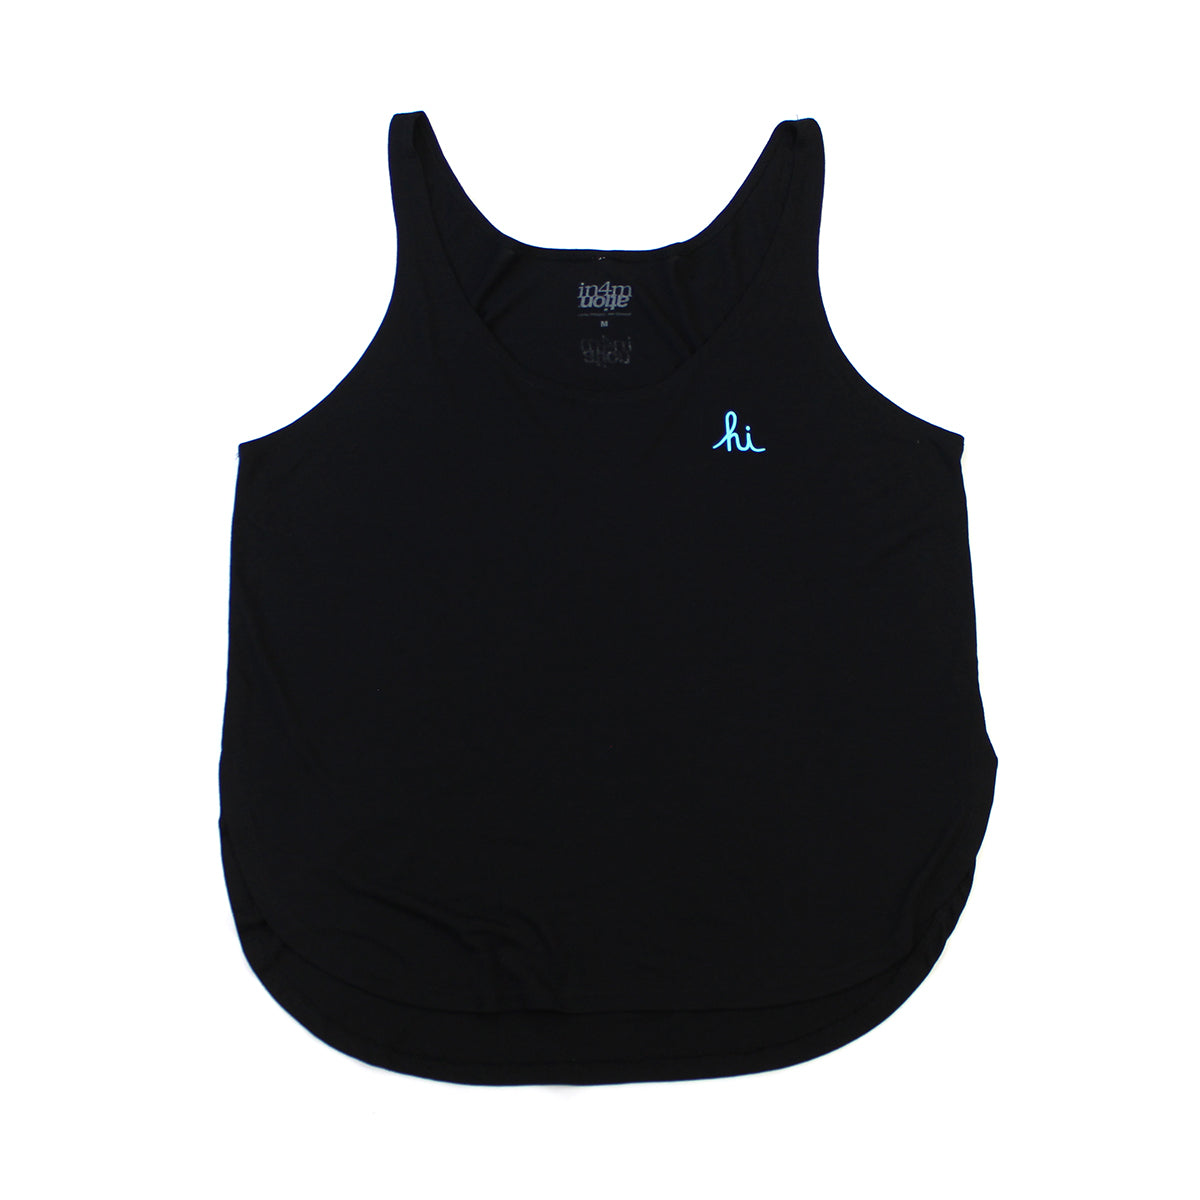 IN4MGIRLS - WOMENS MINI HI TANK TOP (BLK/BABY BLUE)